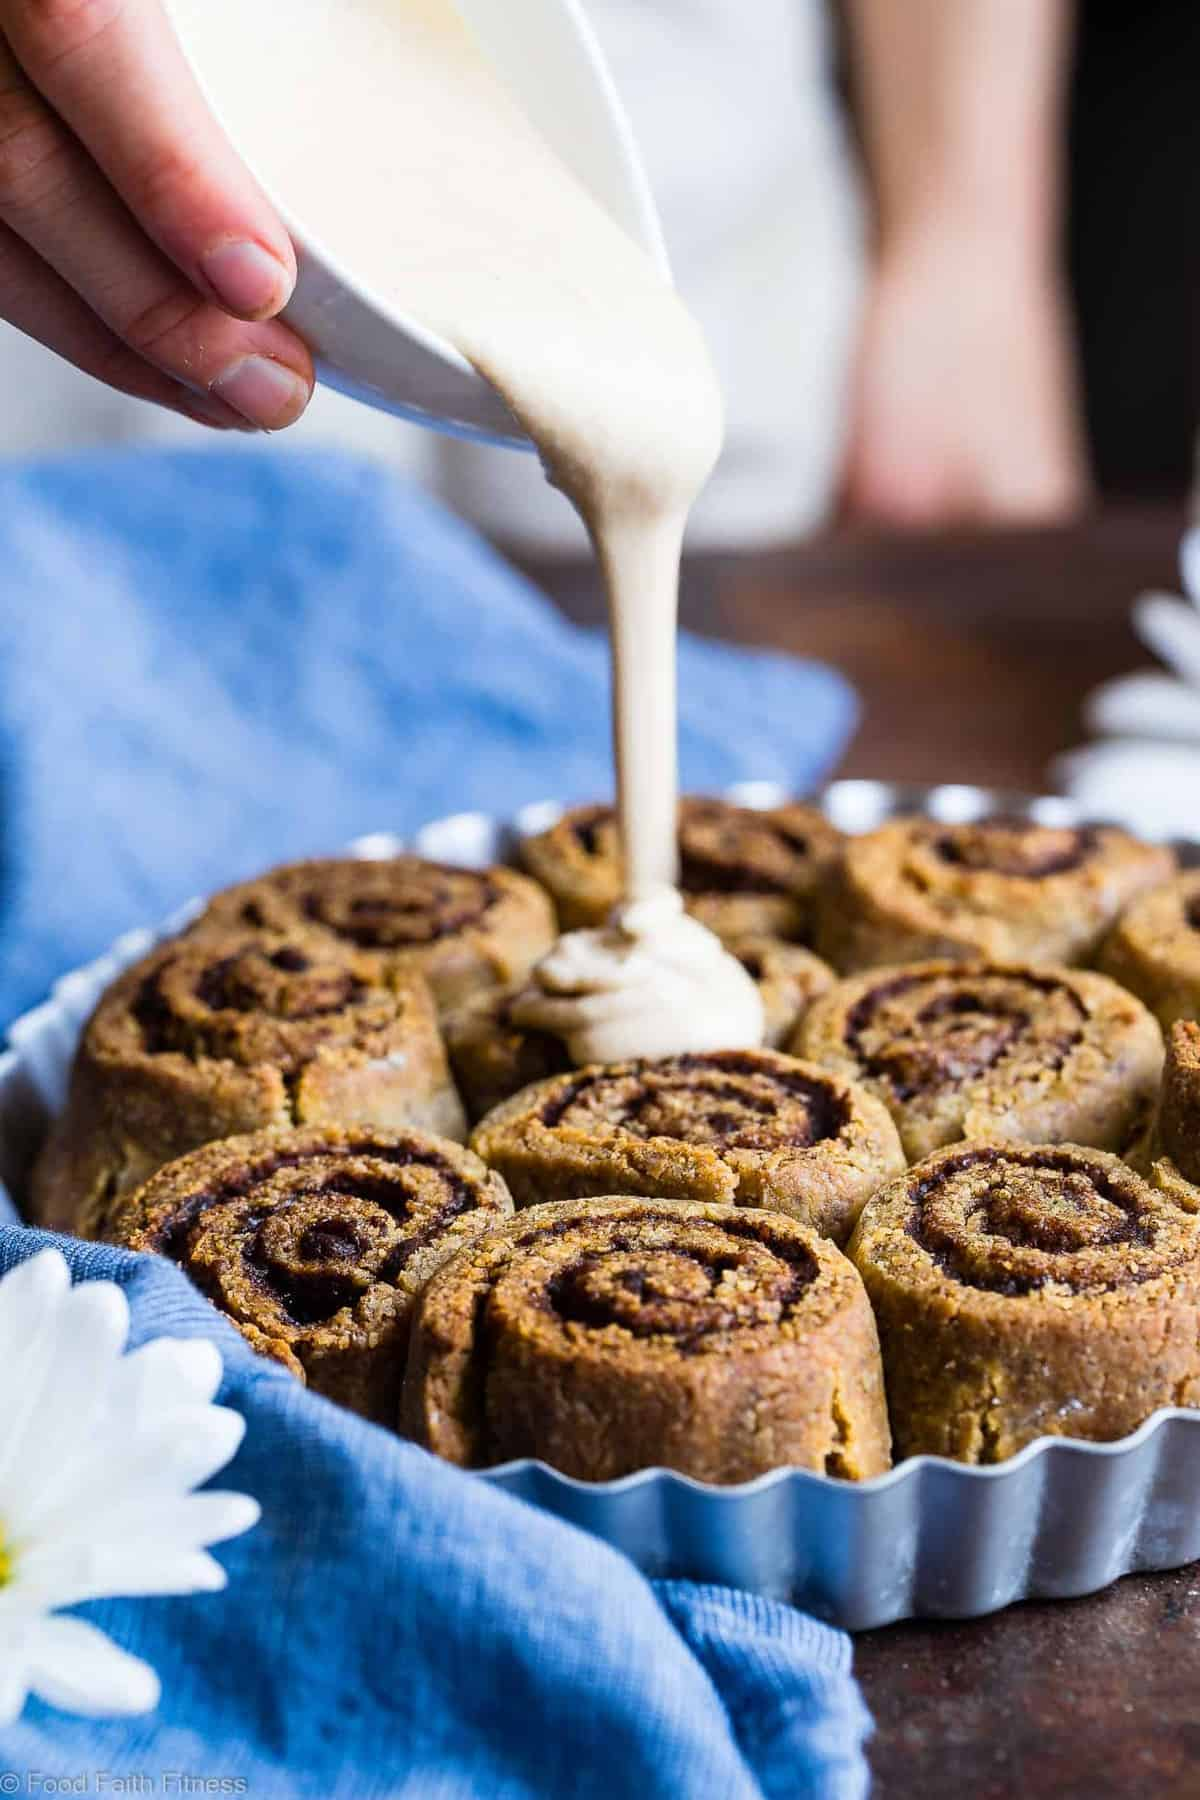 The Best Paleo Cinnamon Rolls - These gluten free cinnamon rolls are a simple, wholesome remake of the classic baked good that you can't even tell is healthy, and gluten/dairy free! SO soft, fluffy and YUMMY! | #Foodfaithfitness | #Paleo #Glutenfree #Healthy #Dairyfree #Cinnamonrolls